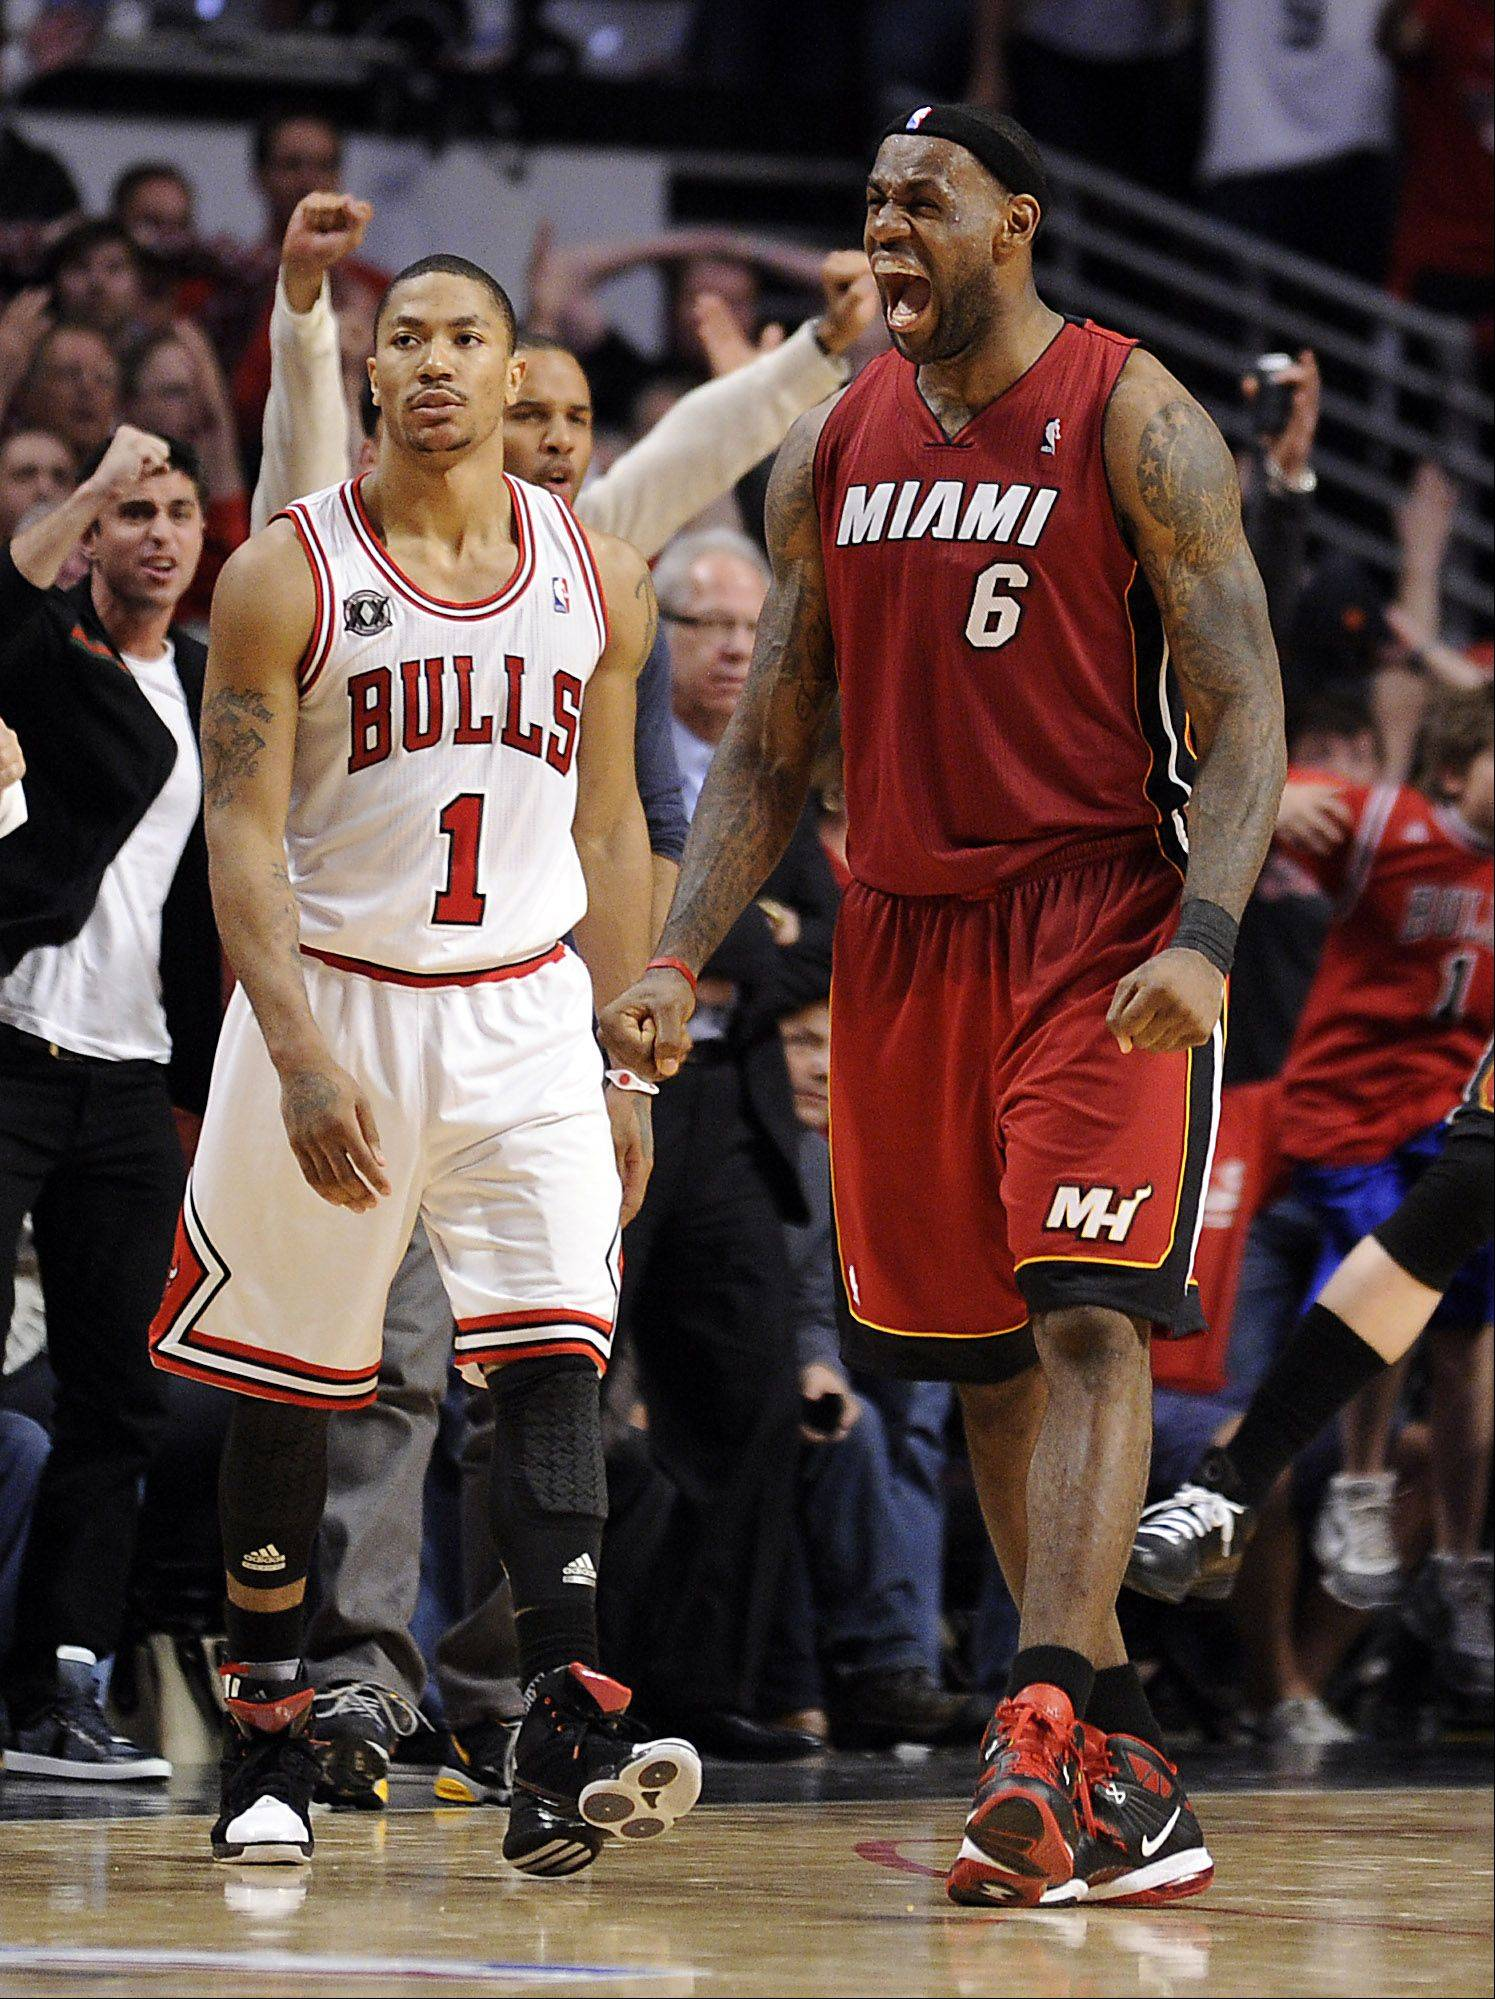 Bulls season begins: Who will reign in 2014?